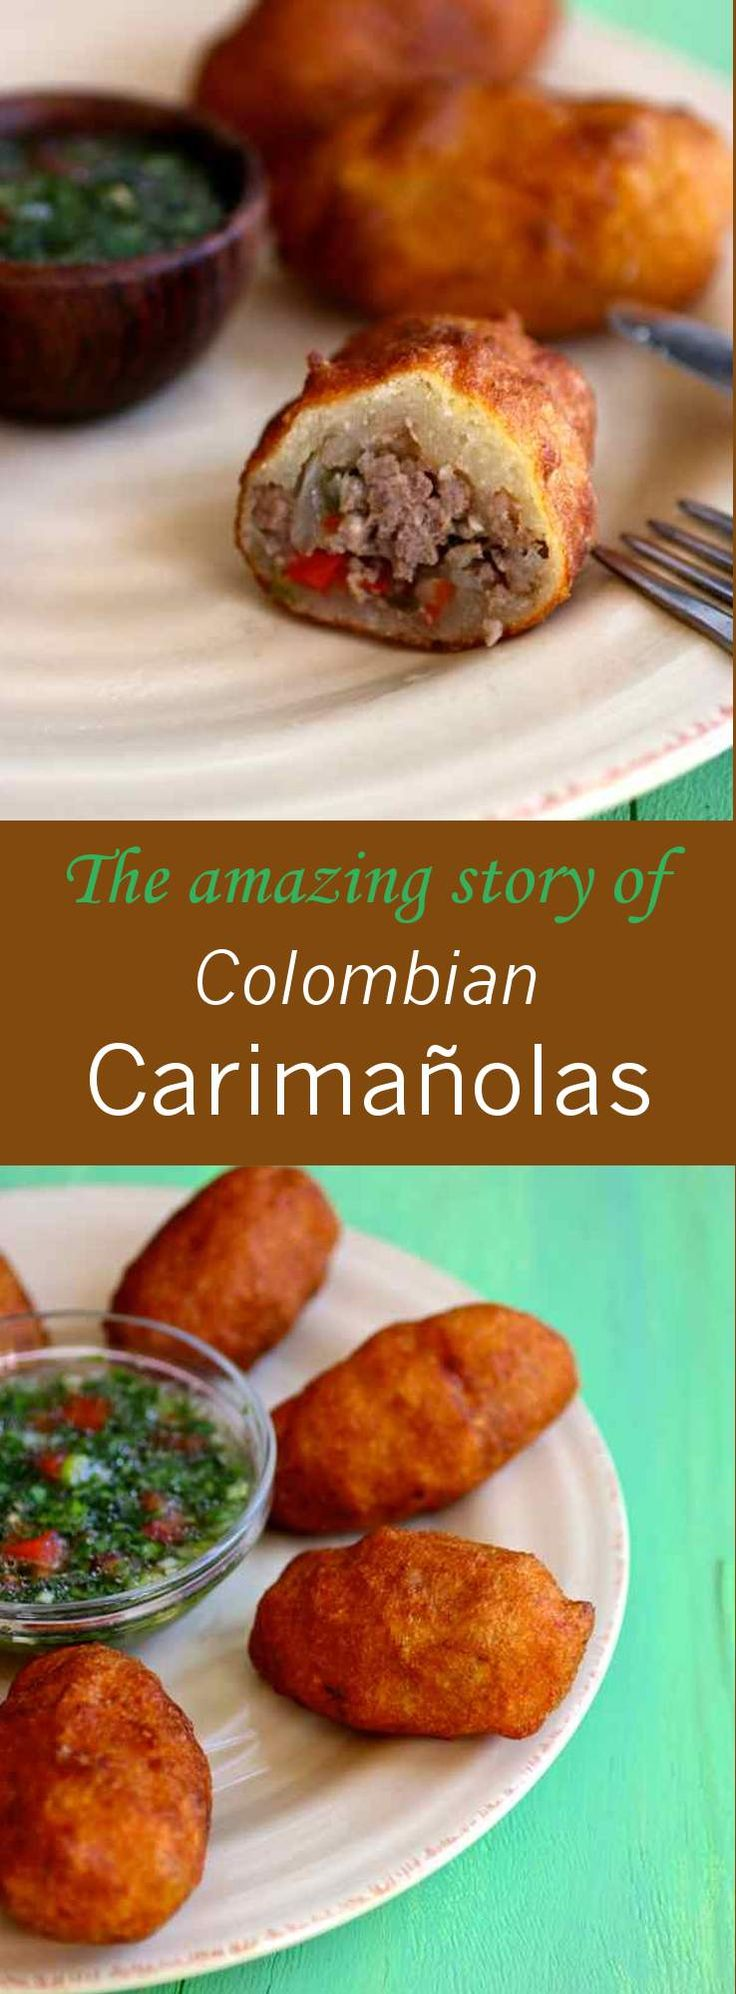 Carimañolas are Colombian snacks that consist of mashed cassava filled with beef, chicken or cheese and then deep-fried. #glutenfree #196flavos